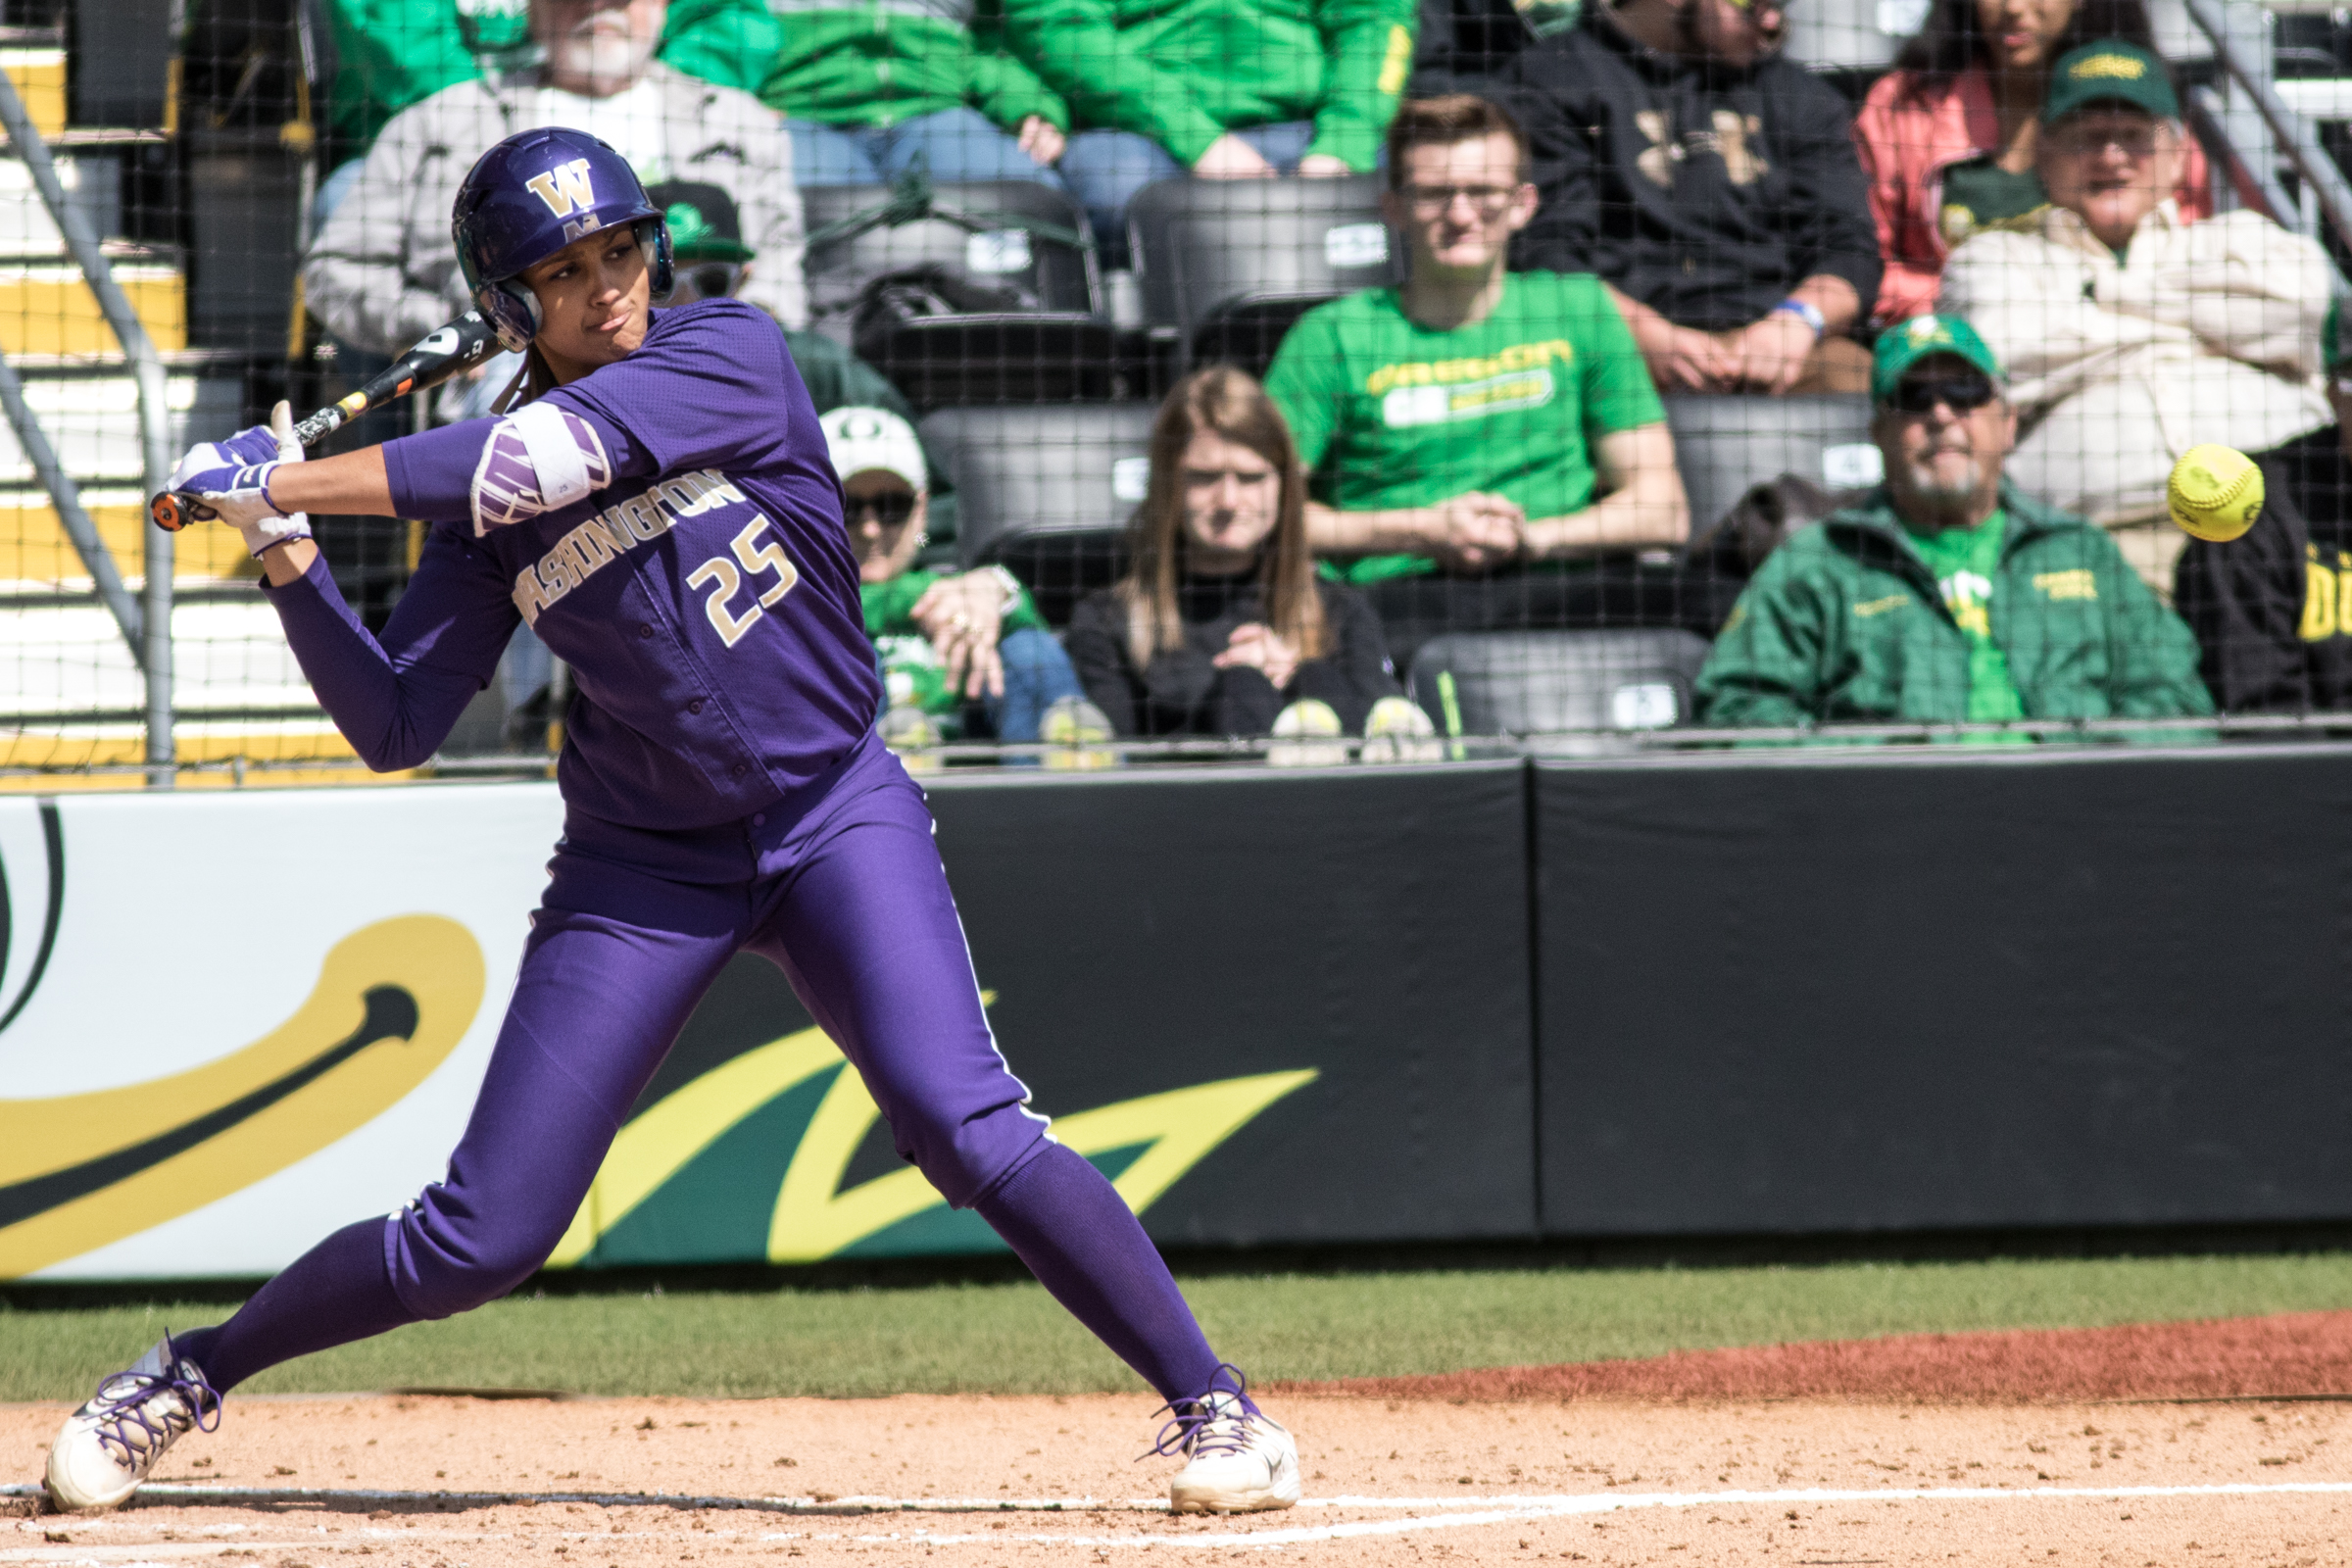 Kirstyn Thomas (#25) waits for the ball to reach her. In the final game of a three-game series, the University of Washington Huskies defeated the Oregon Ducks 5-3.  The Ducks led through the bottom of the 7th inning, but Washington's Morganne Flores (#47) tied it up with a two-run double.  Flores drove in two more runs in the 9th to take the lead.  Photo by Austin Hicks, Oregon News Lab